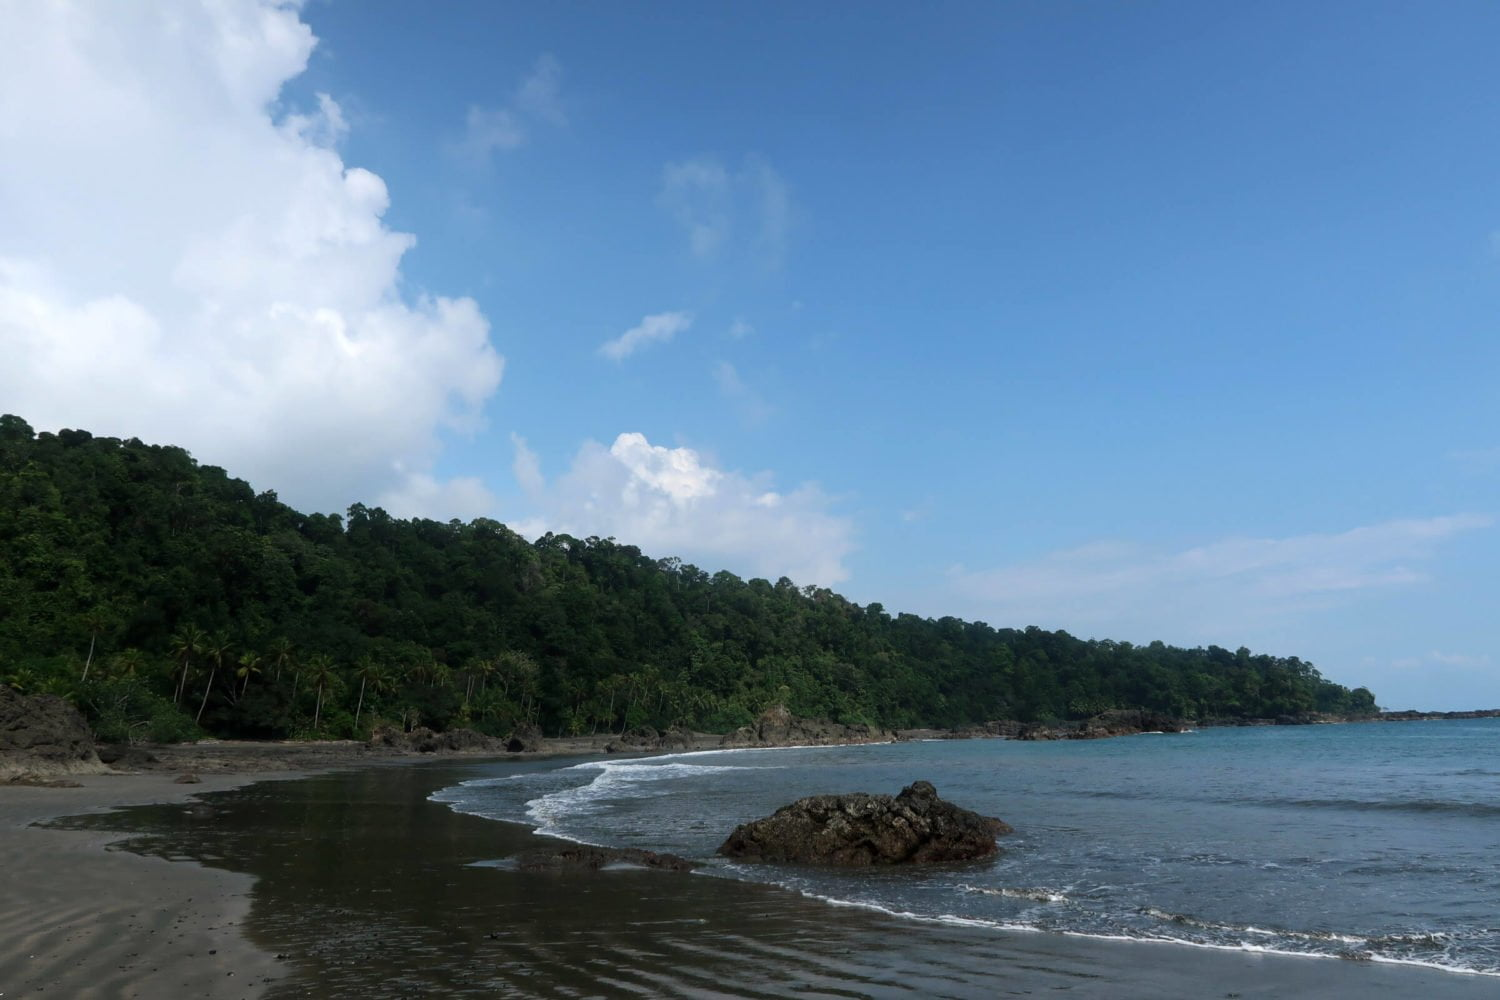 panoramic view of Playa Larga on Colombia's Pacific Coast